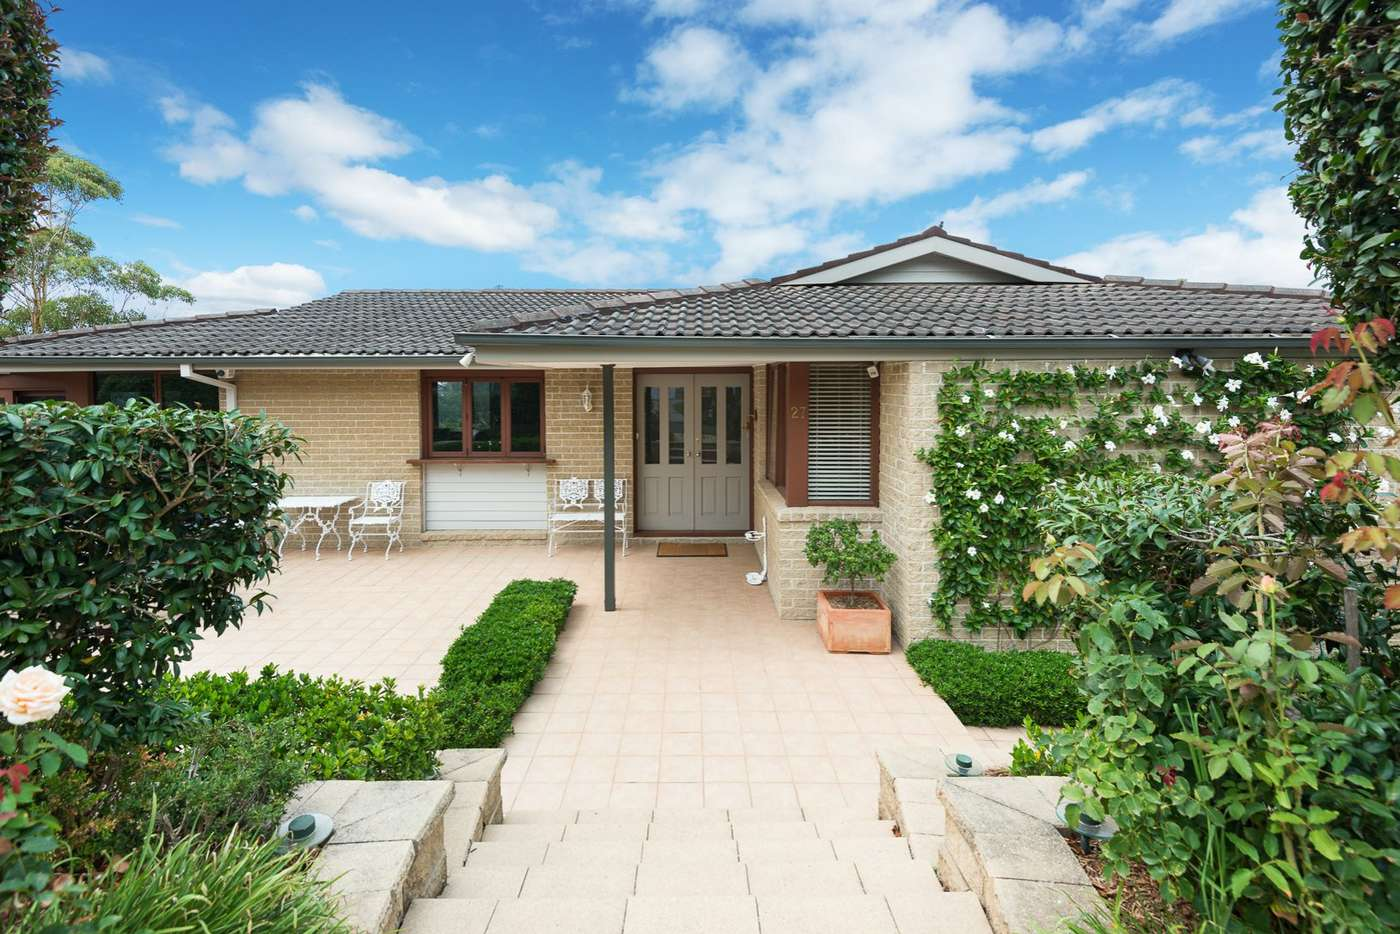 Sixth view of Homely house listing, 27 Walker Avenue, St Ives NSW 2075